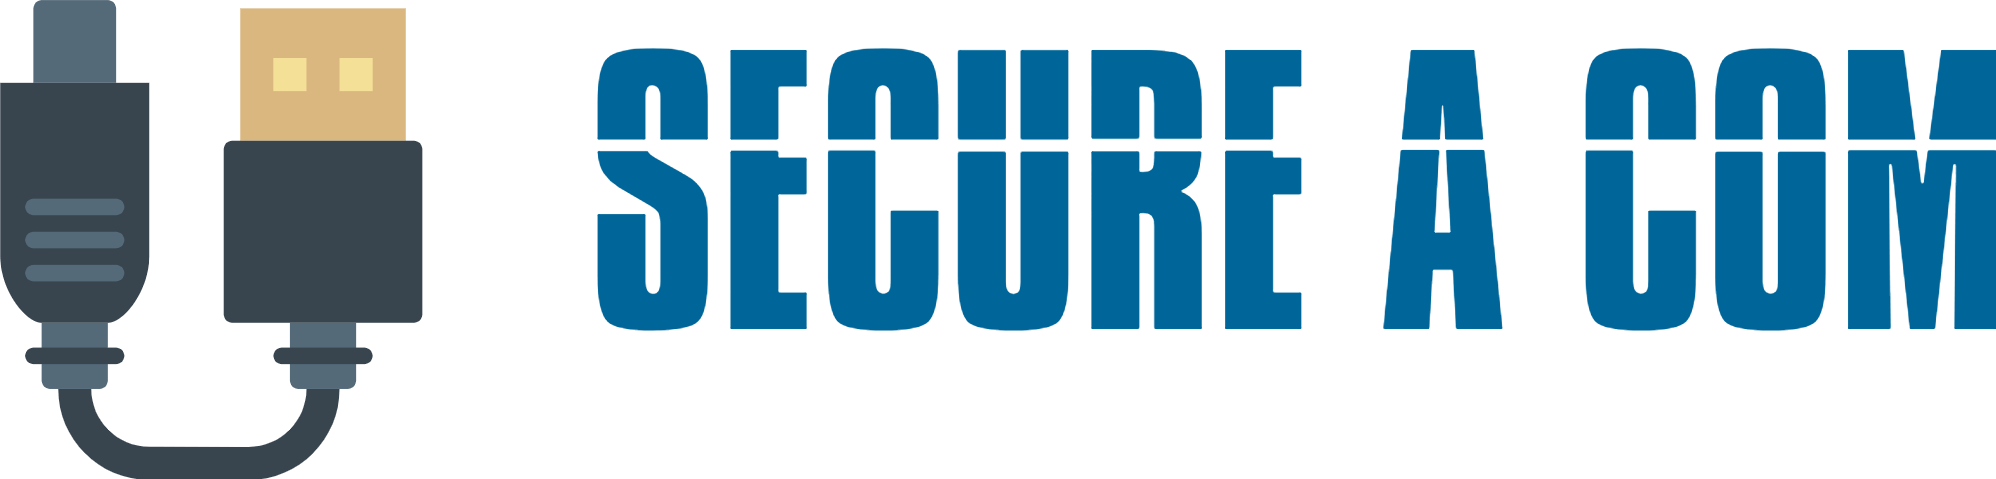 secure-a-com-techncian-finder-australia-transparent